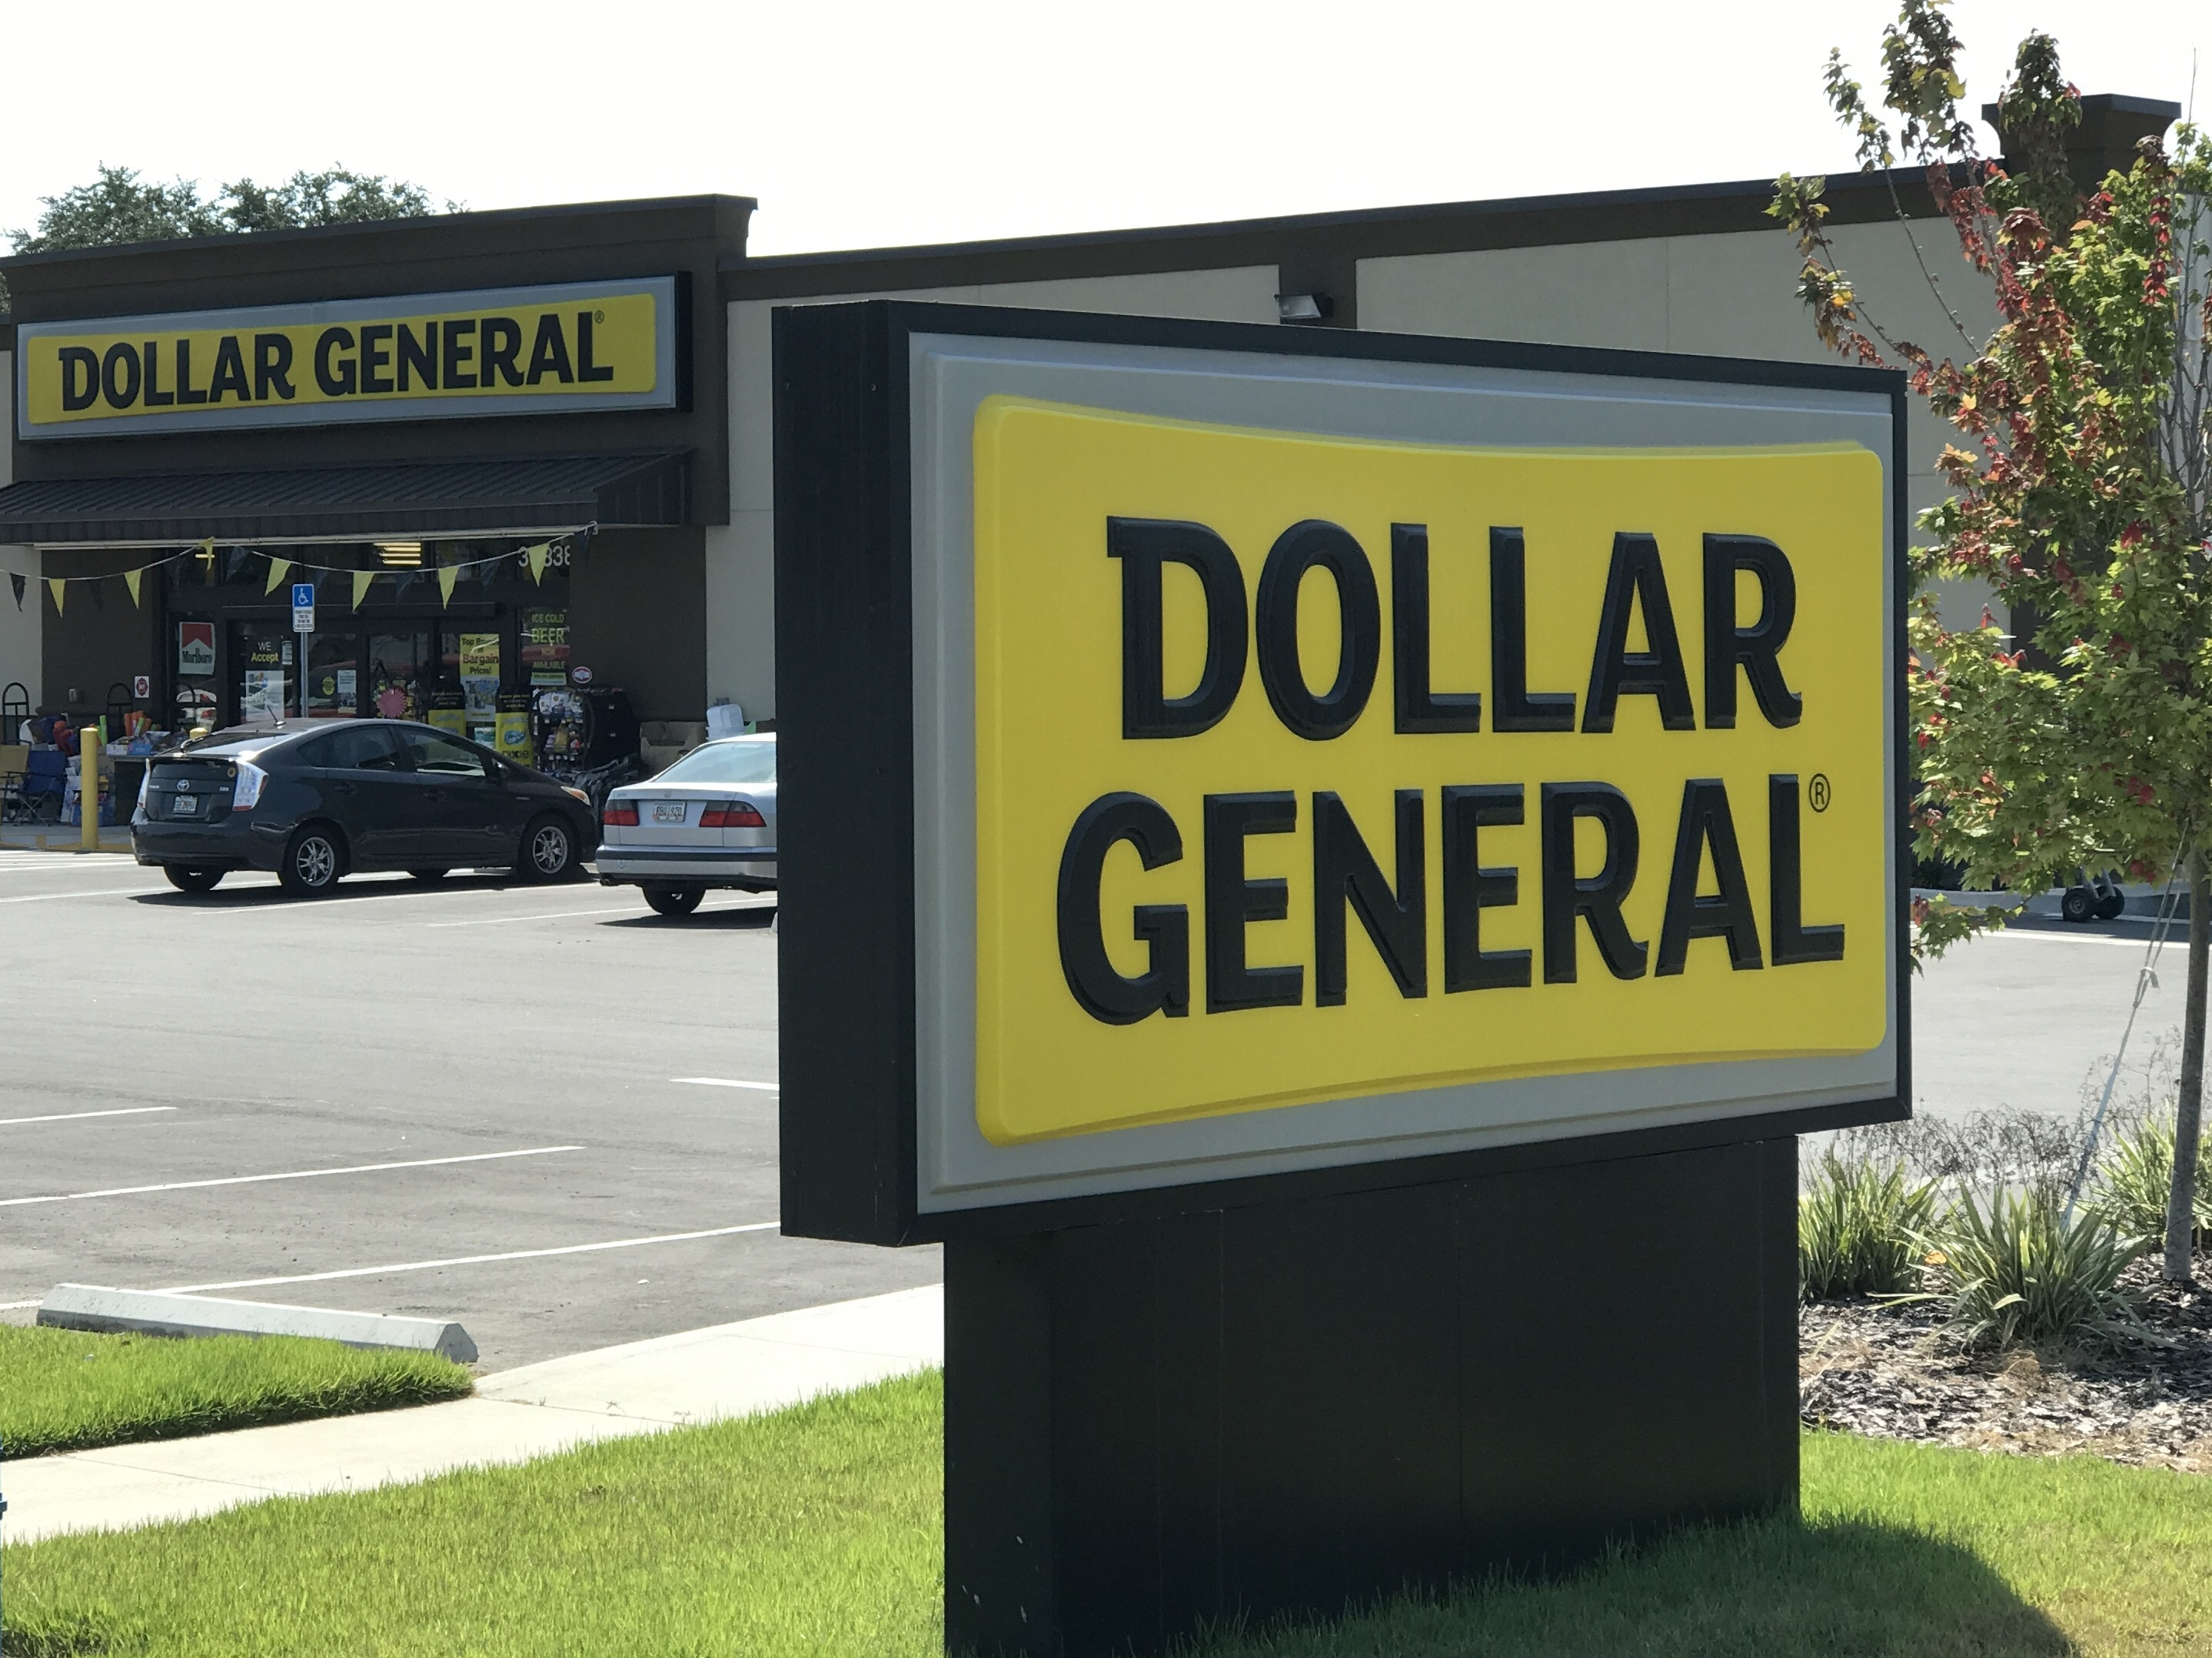 Dollar General Plans to Open 900 New Stores Next Year